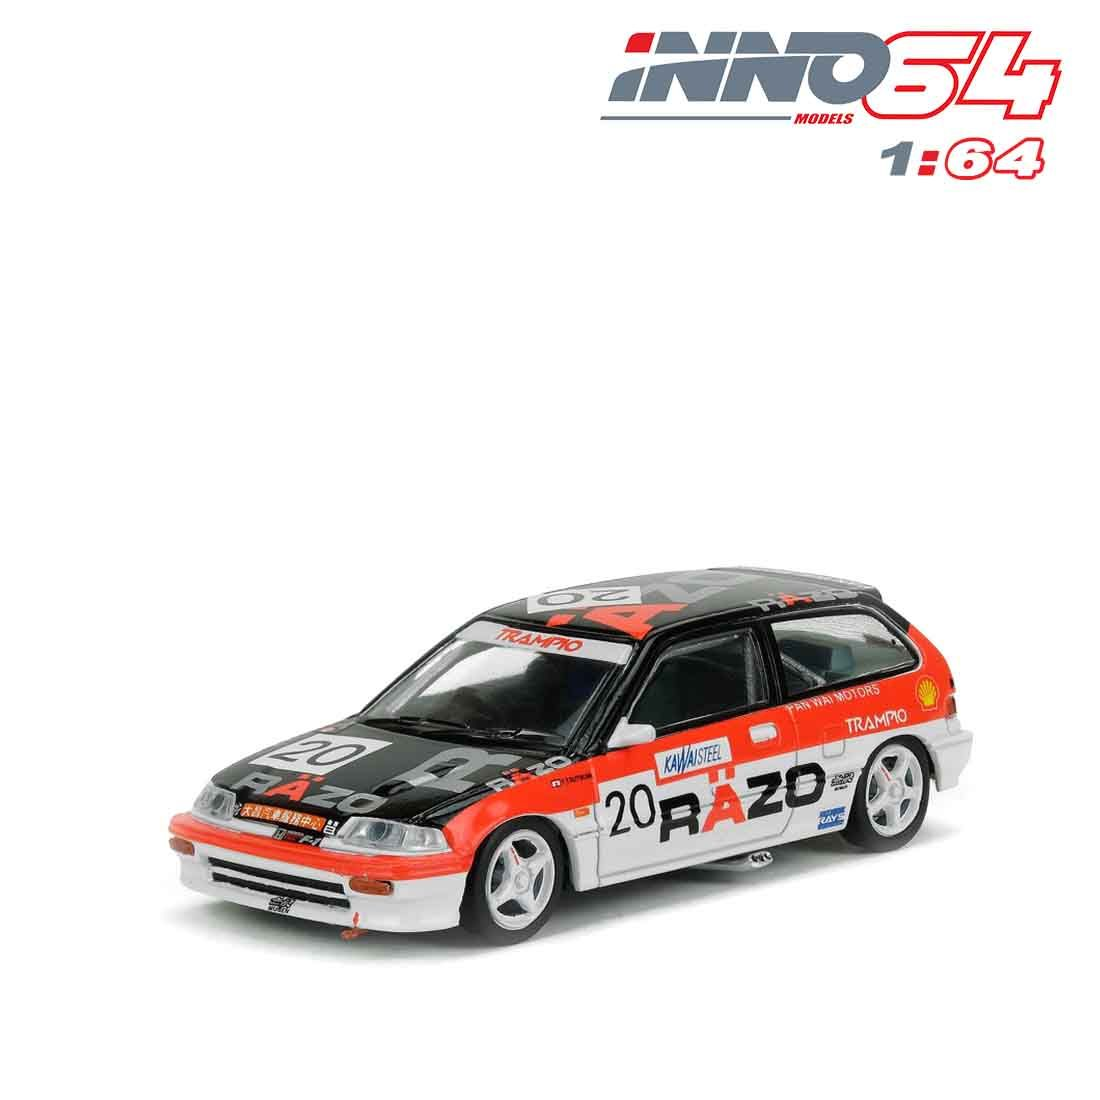 【已截訂】Inno Models Honda Civic EF3 Gr.A No20 RAZO Macau Guia Race 1989 Class Winner 1/64 Diecast Car